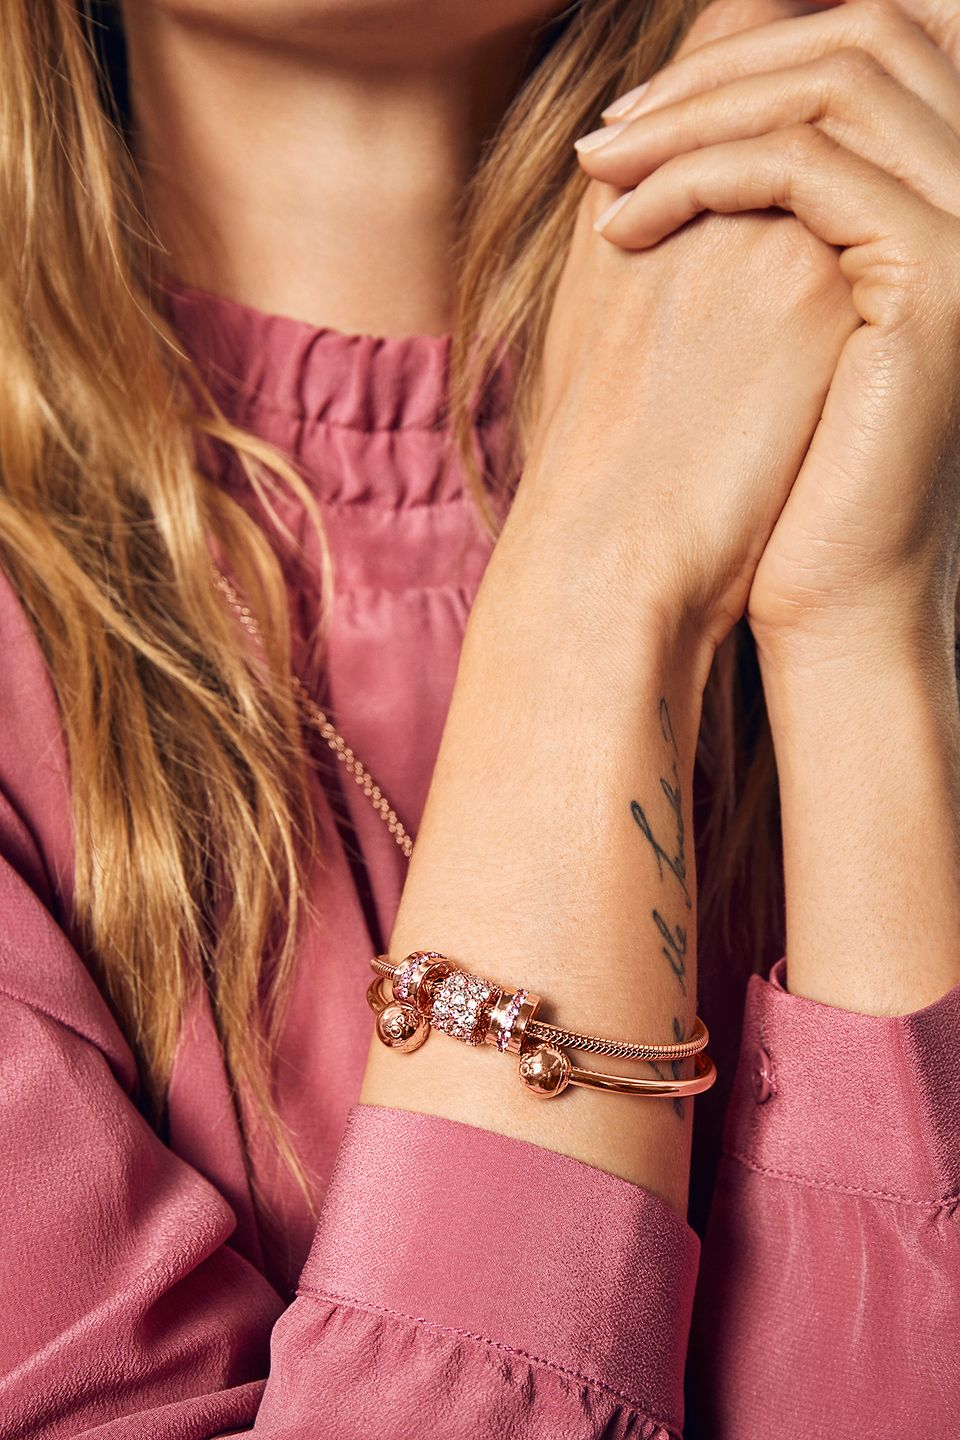 Show her that you know her with Pandora's classic jewelry.